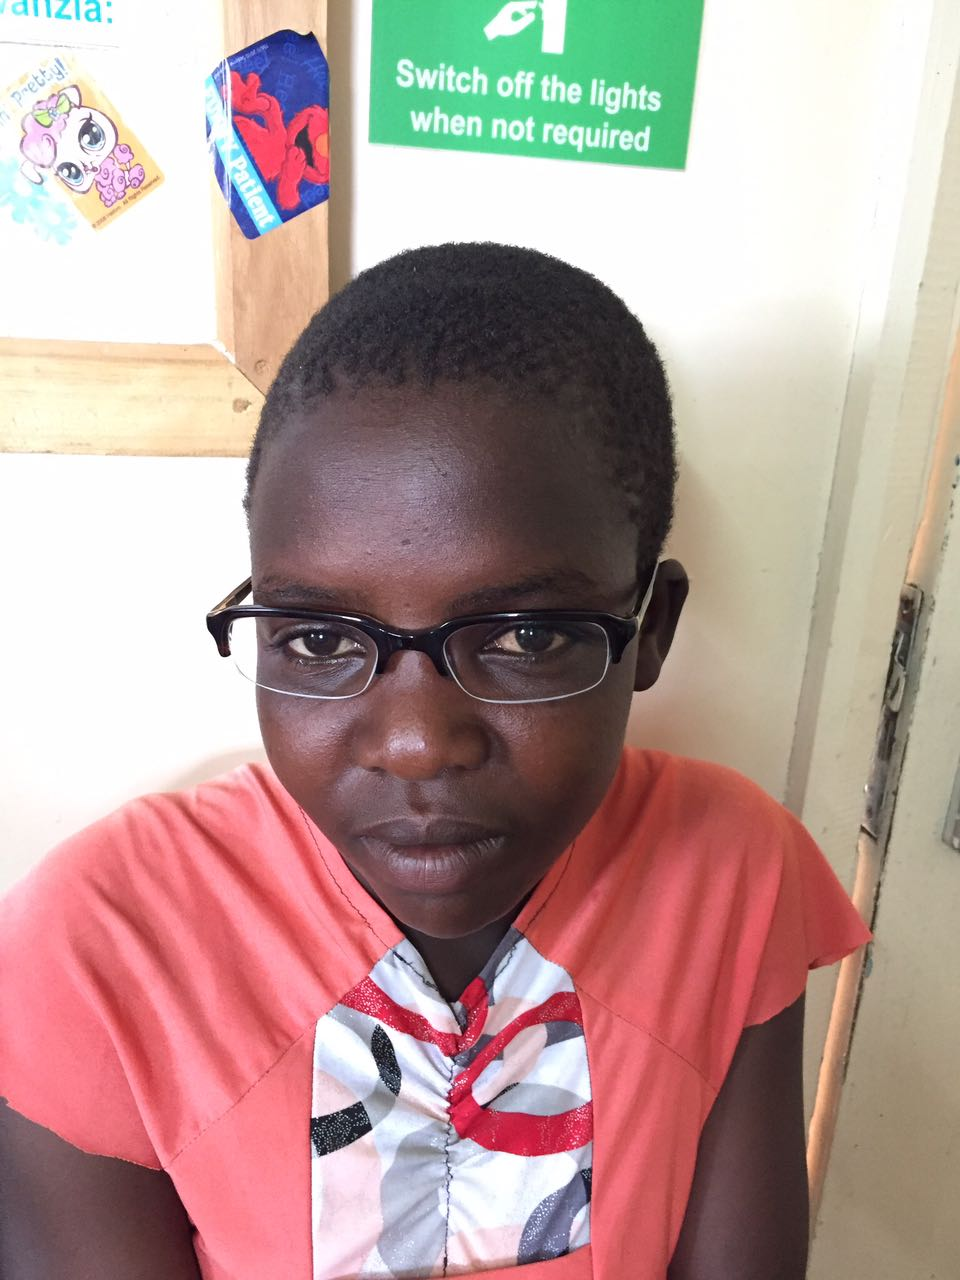 Looking smart with your new specs! On the day after the outreach, three young patients (students) came to Lewa for follow-up treatment and were able to walk away with the right prescription and lenses